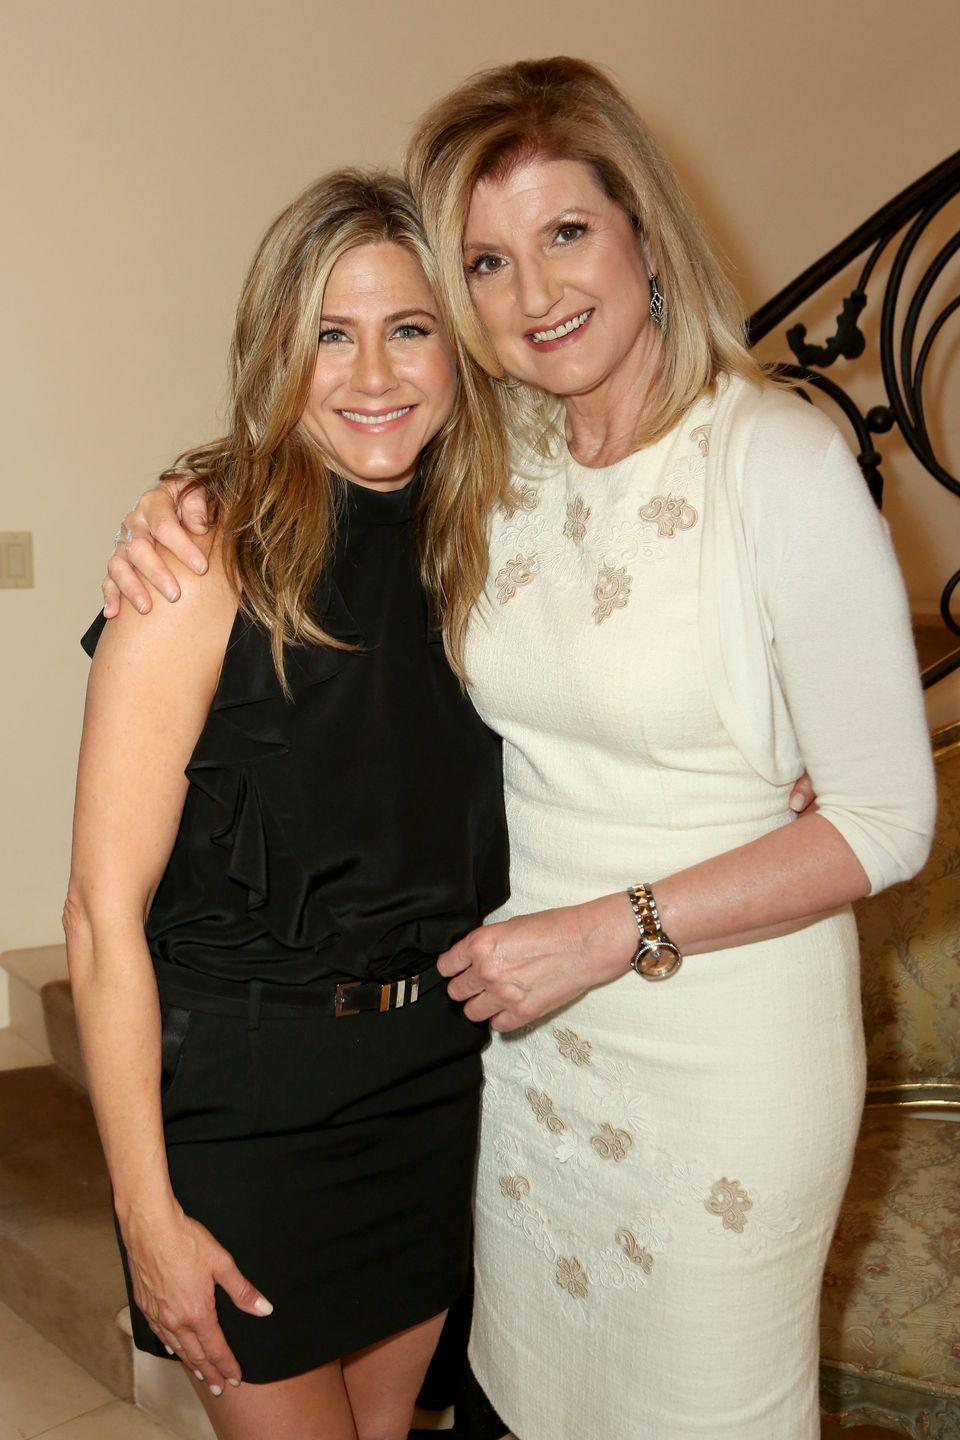 <p>In 2015, author Arianna Huffington celebrated Jen's success in the film <em>Cake</em>. The movie put Jen in a more dramatic role, and it paid off. She earned Golden Globe and SAG Award nominations for the role.<br></p>